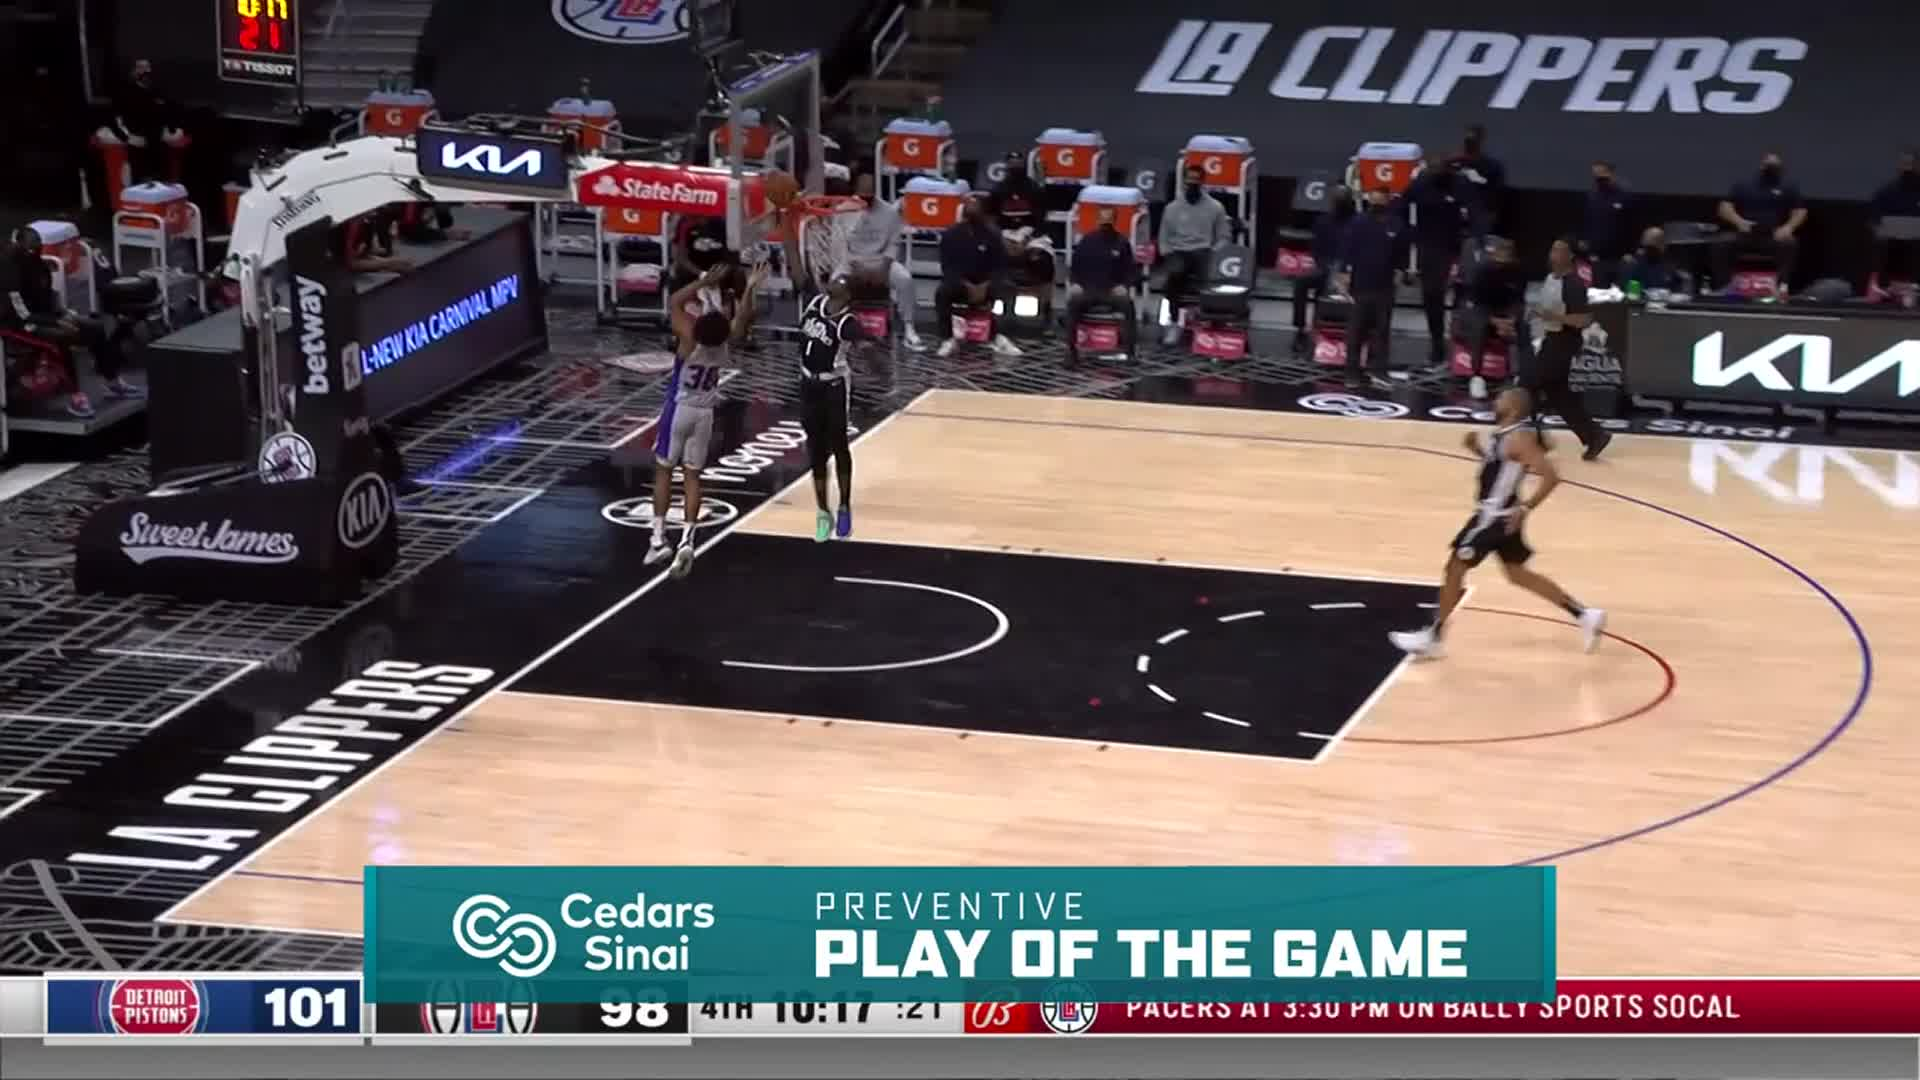 Cedars-Sinai Preventive Play of the Game | Clippers vs Pistons (4.11.21)